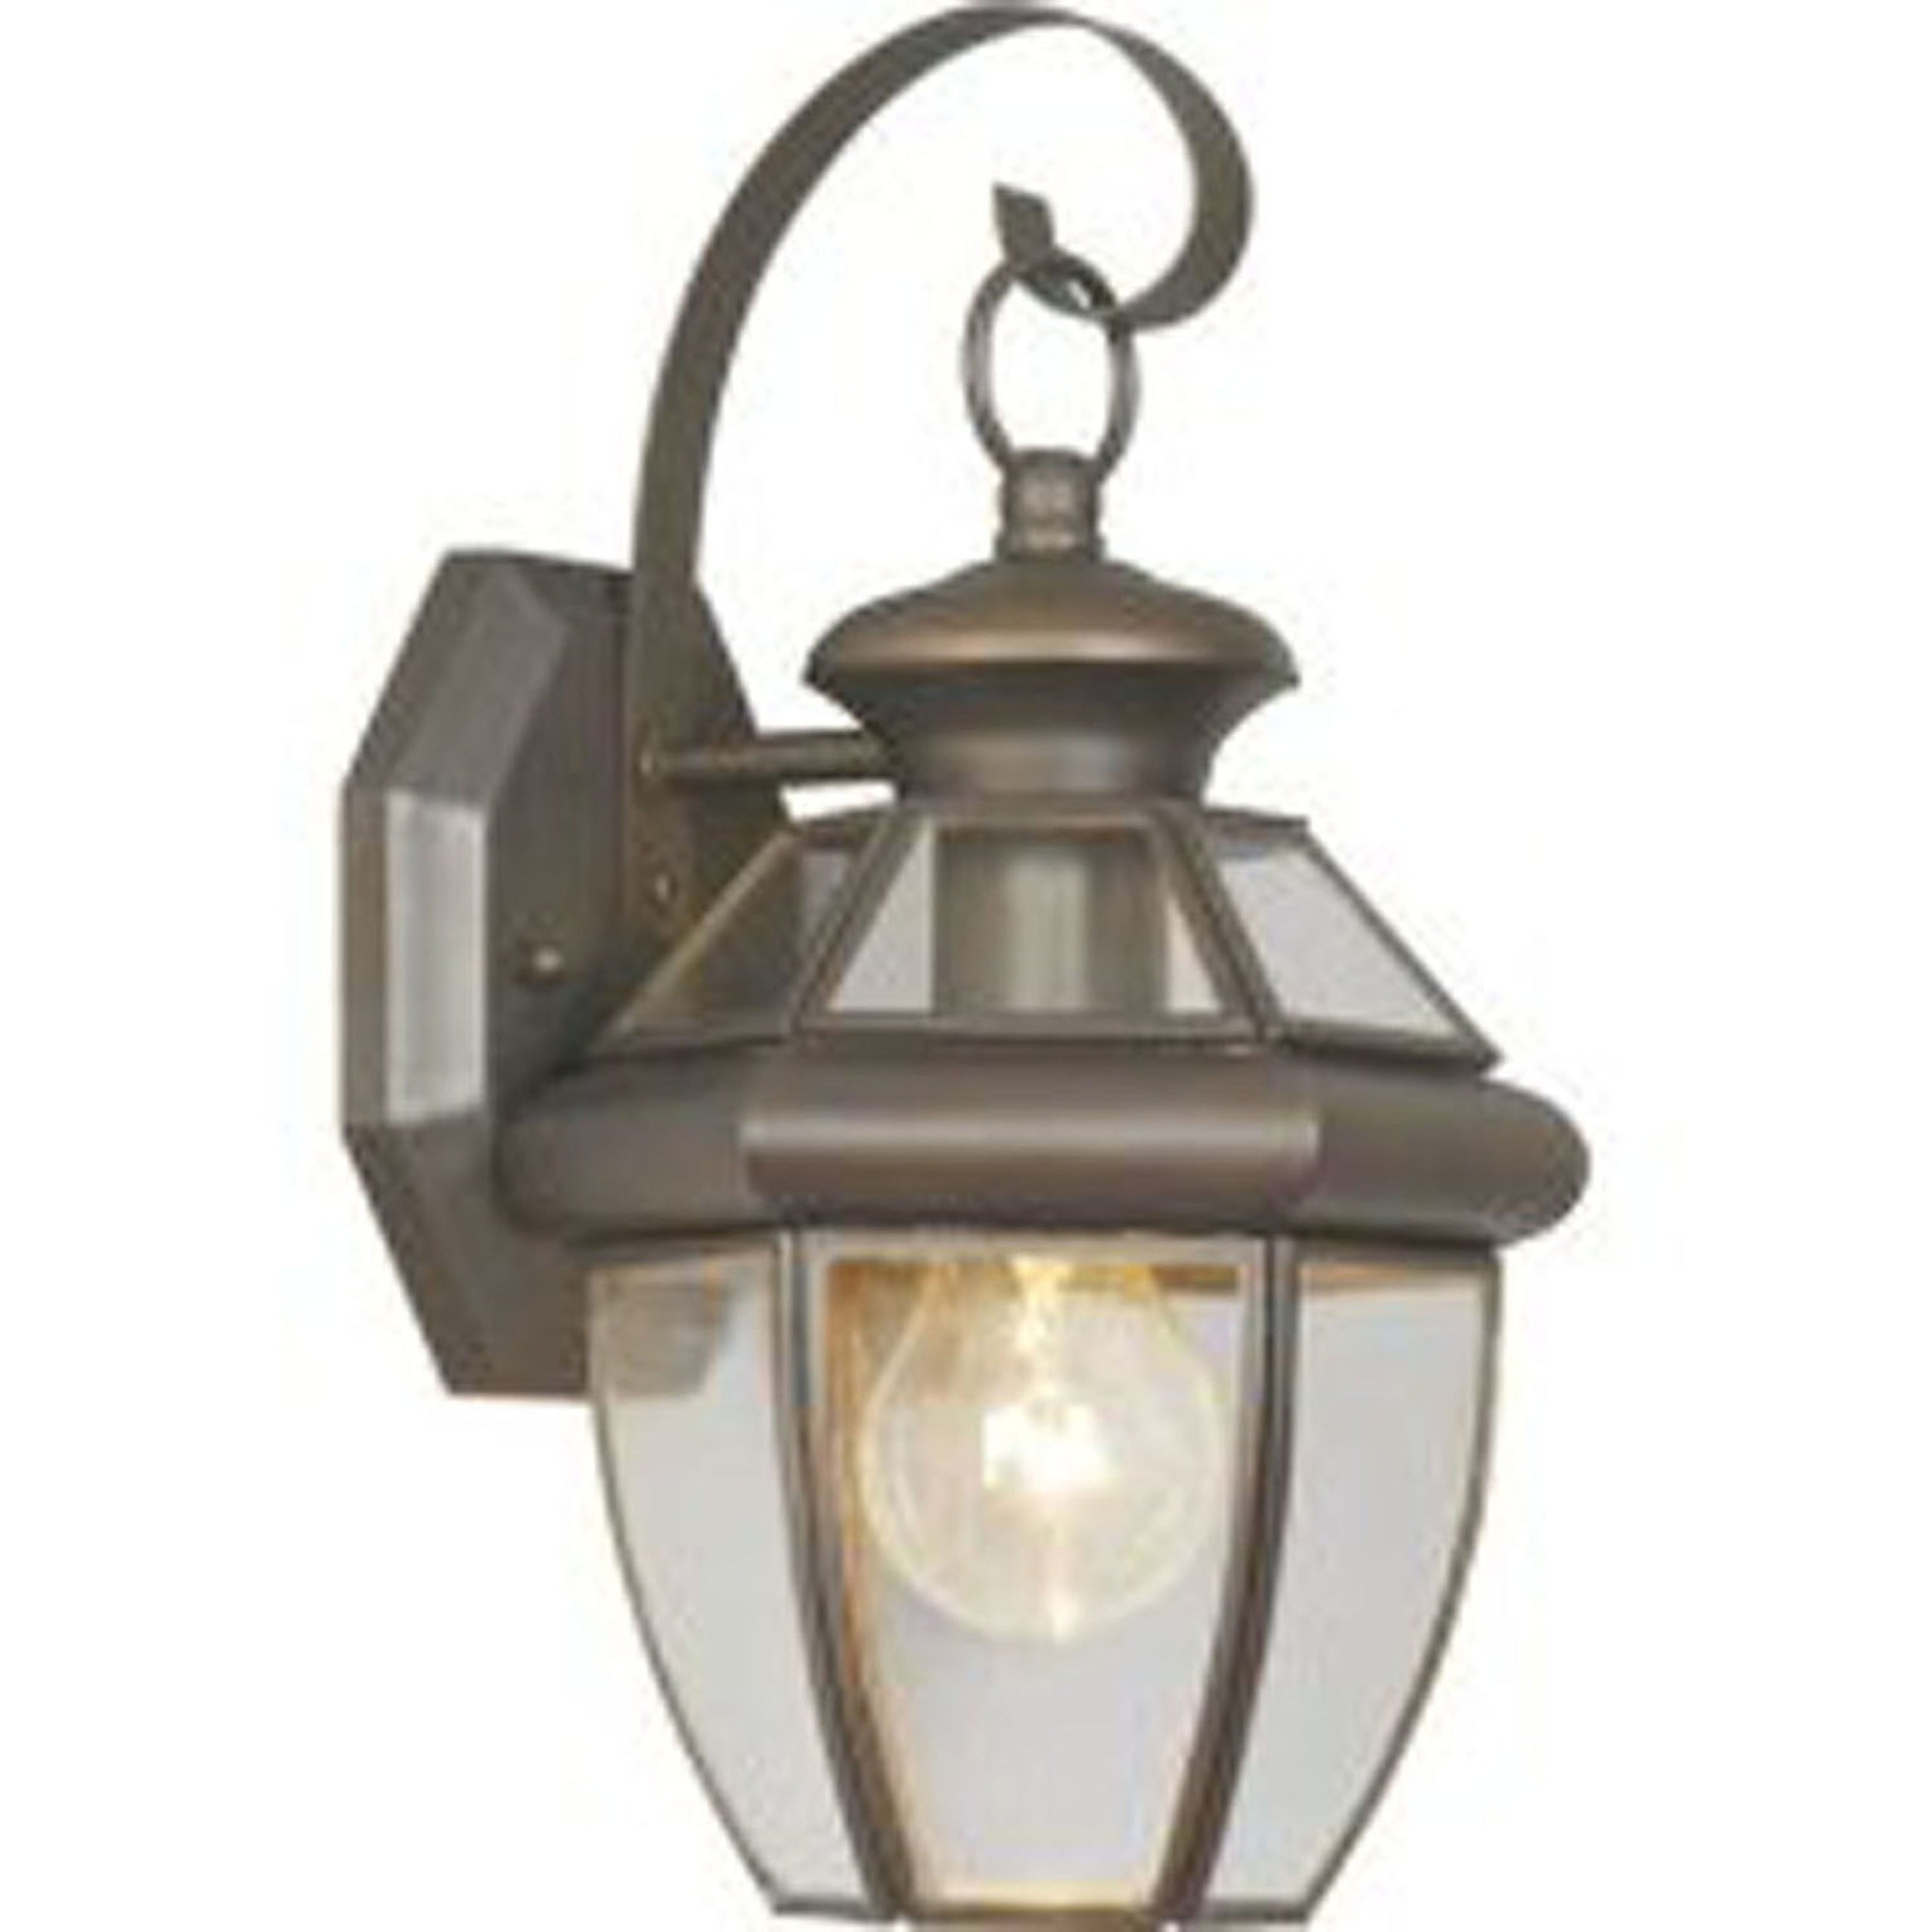 Livex Lighting 2051-07 Monterey 1 Light Outdoor Bronze Finish Solid Brass Wall Lantern with Clear Beveled Glass